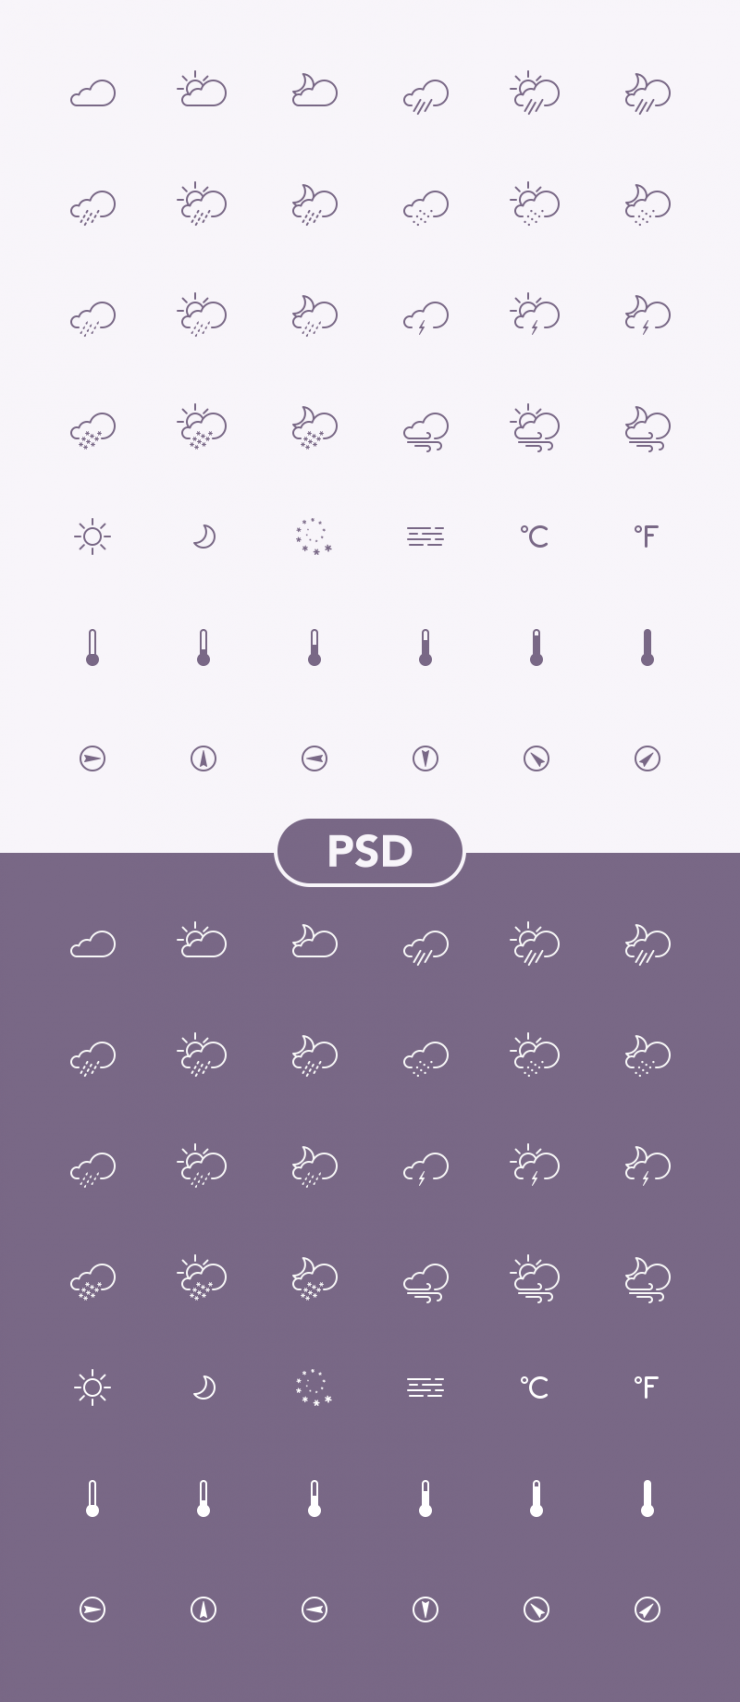 Line Weather Icons PSD Set Web Resources Web Elements weather unique Sun Stylish Snow small Simple set. psd kit Resources raining Rain Quality PSD Set PSD Icons PSD pack outline original new moon Modern line Icons Icon PSD Icon Fresh Freebie Free PSD Free Icons Free Icon Elements Download detailed Design Creative Cloud Clean